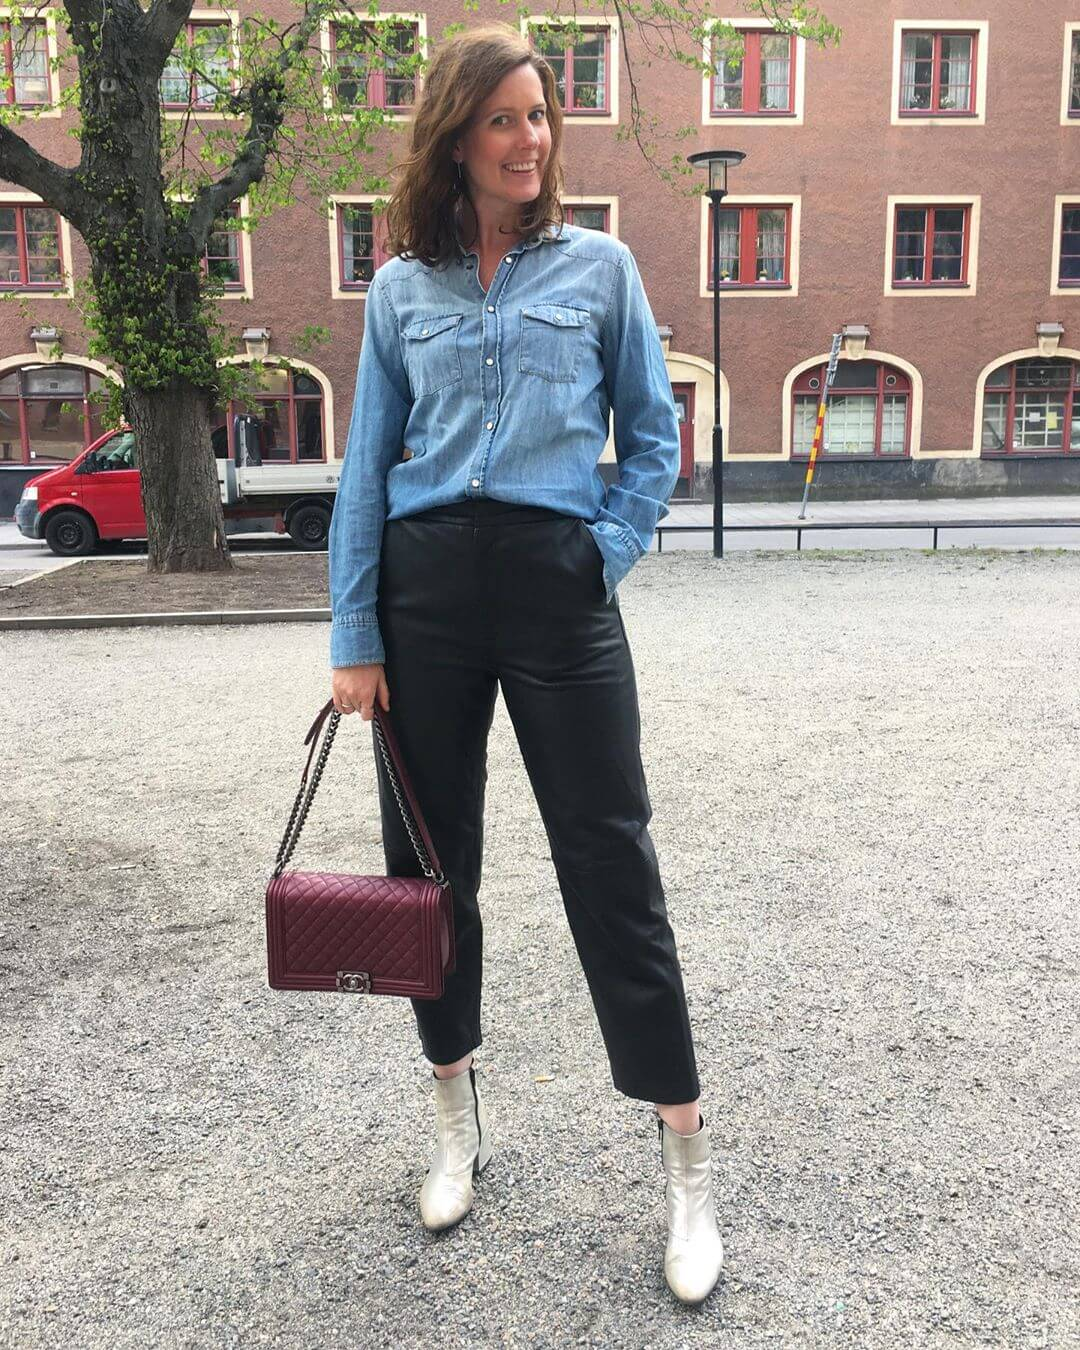 Leather pants with Blue denim shirt